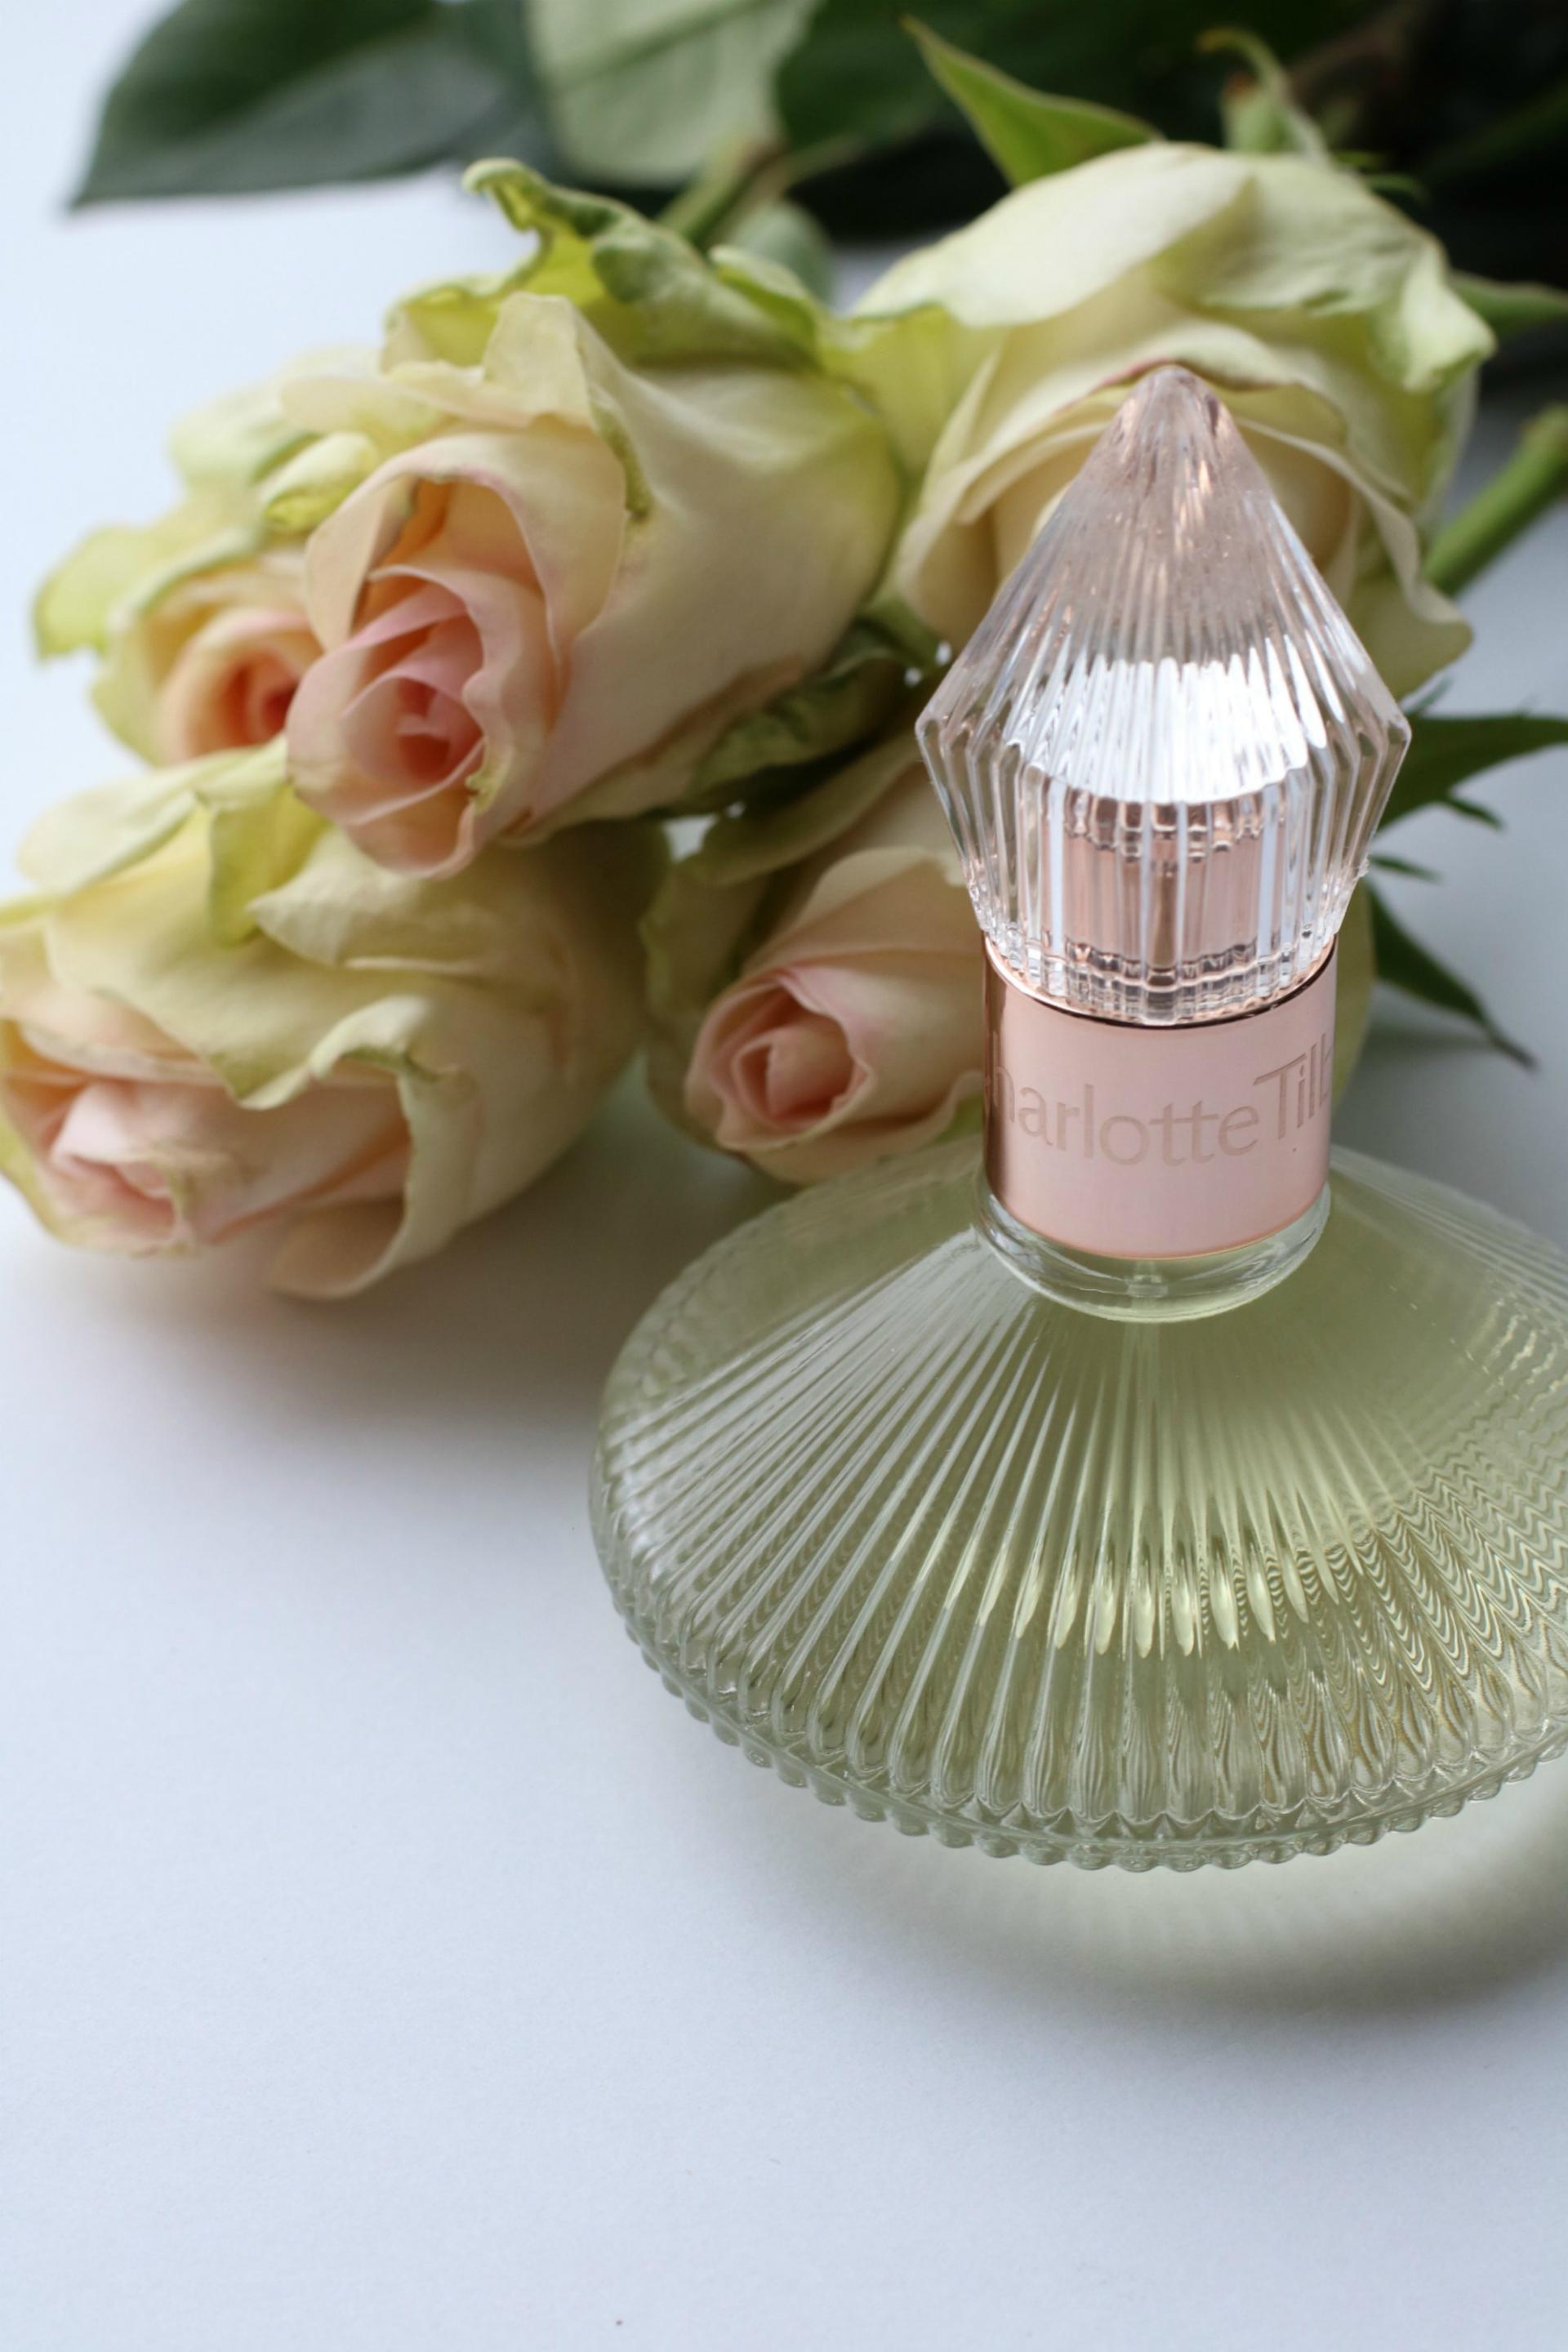 SD Beauty Review: Scent Of A Dream - Charlotte Tilbury